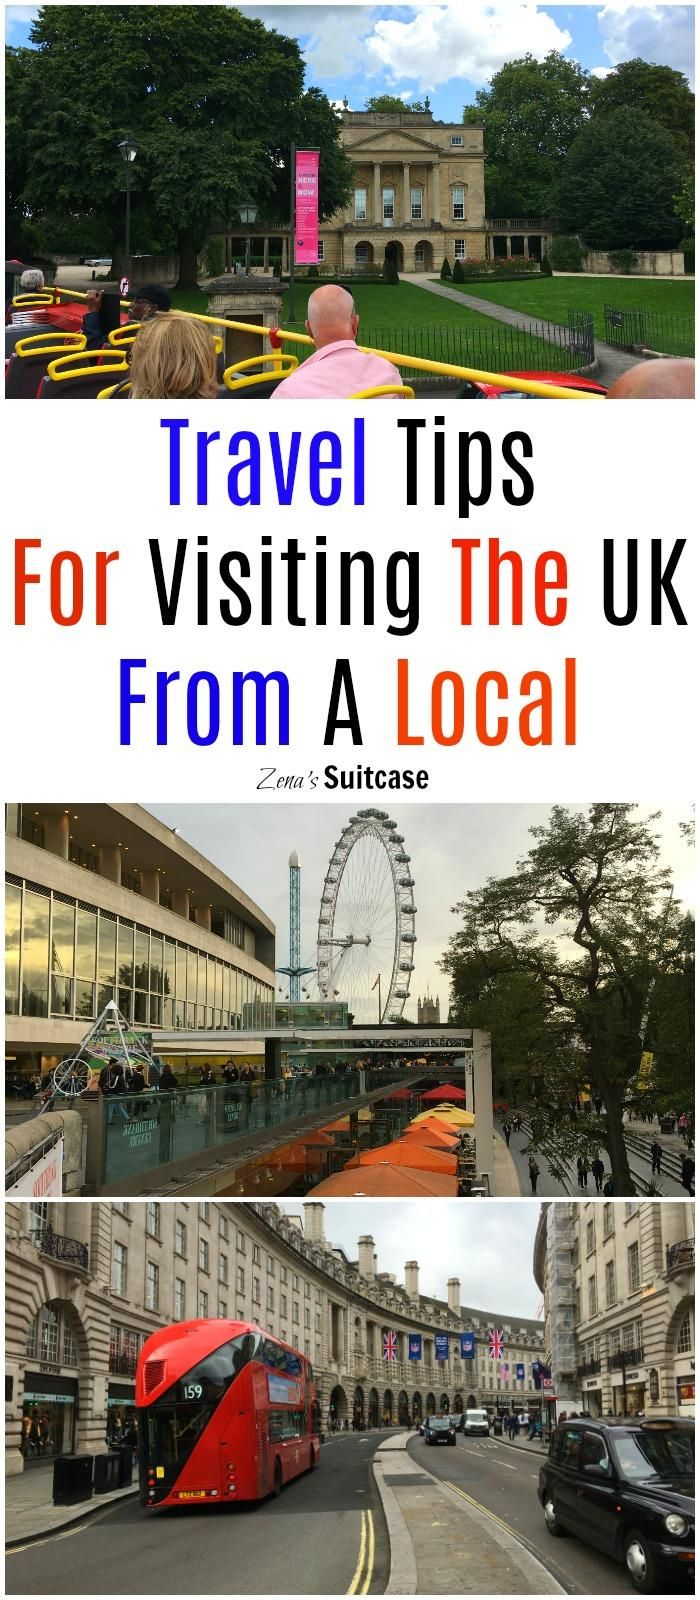 Travel Tips and advice For Visiting The UK From A Local